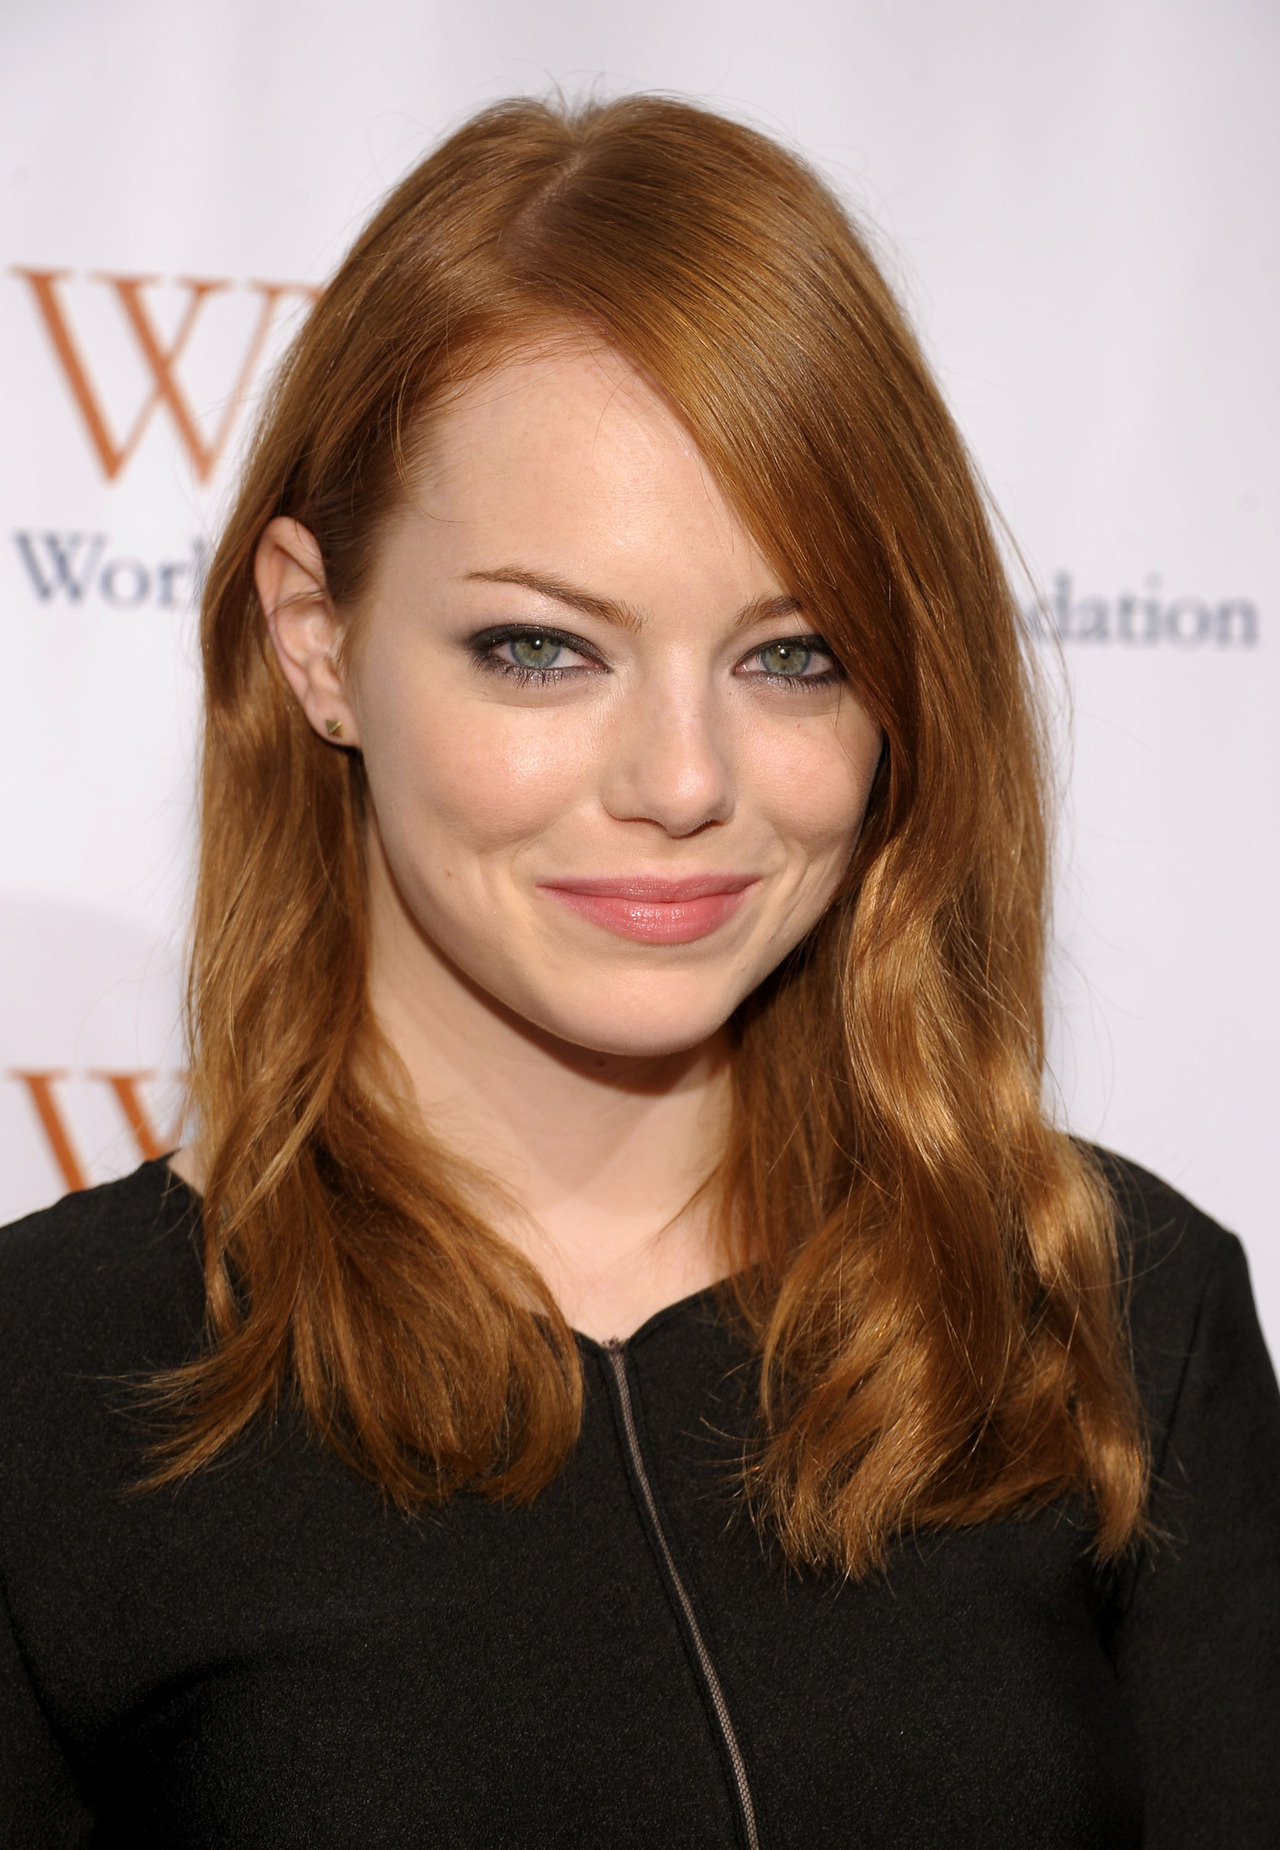 Emma Stone - Worldwide Orphans Foundation Benefit 13.11.11Emma Stone - Source : SwaGirl.com